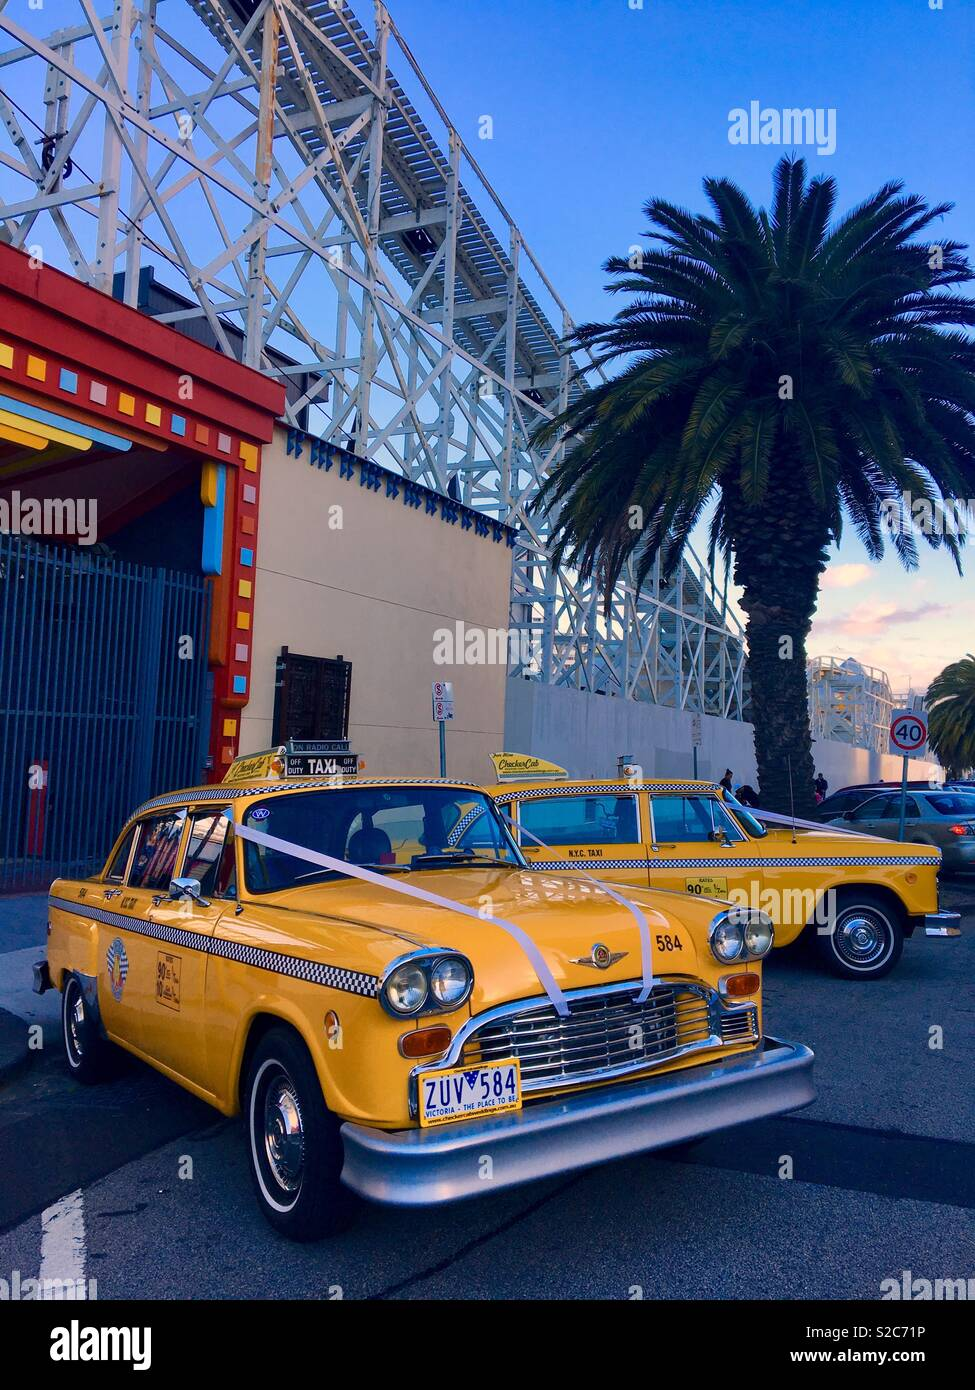 Old American Checker yellow taxi cabs for weddings at Luna Park St